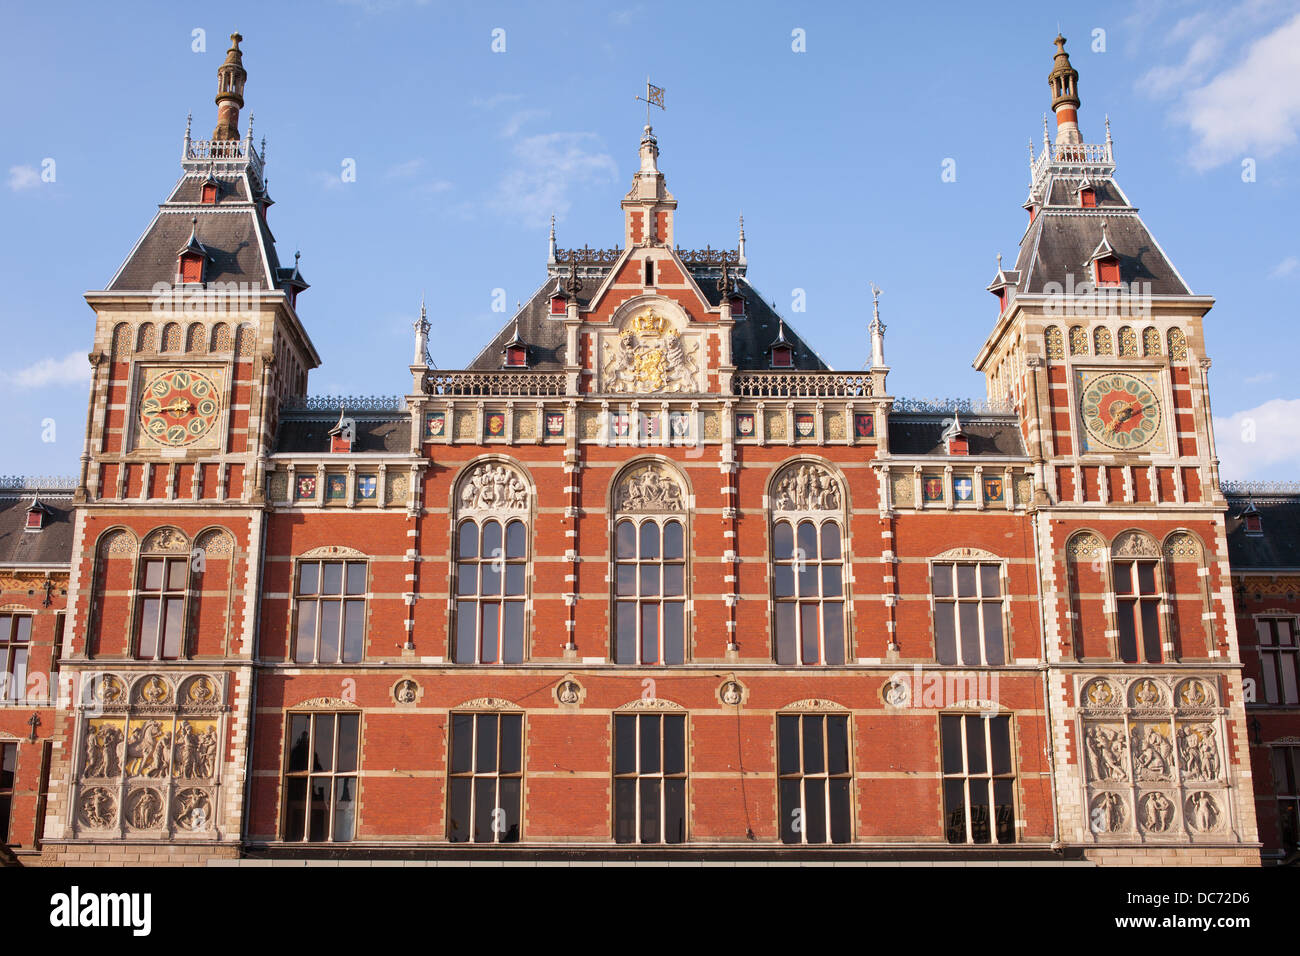 Amsterdam Central Train Station facade in Holland, Netherlands, 19th century Neo-Renaissance and Neo-Gothic style. - Stock Image